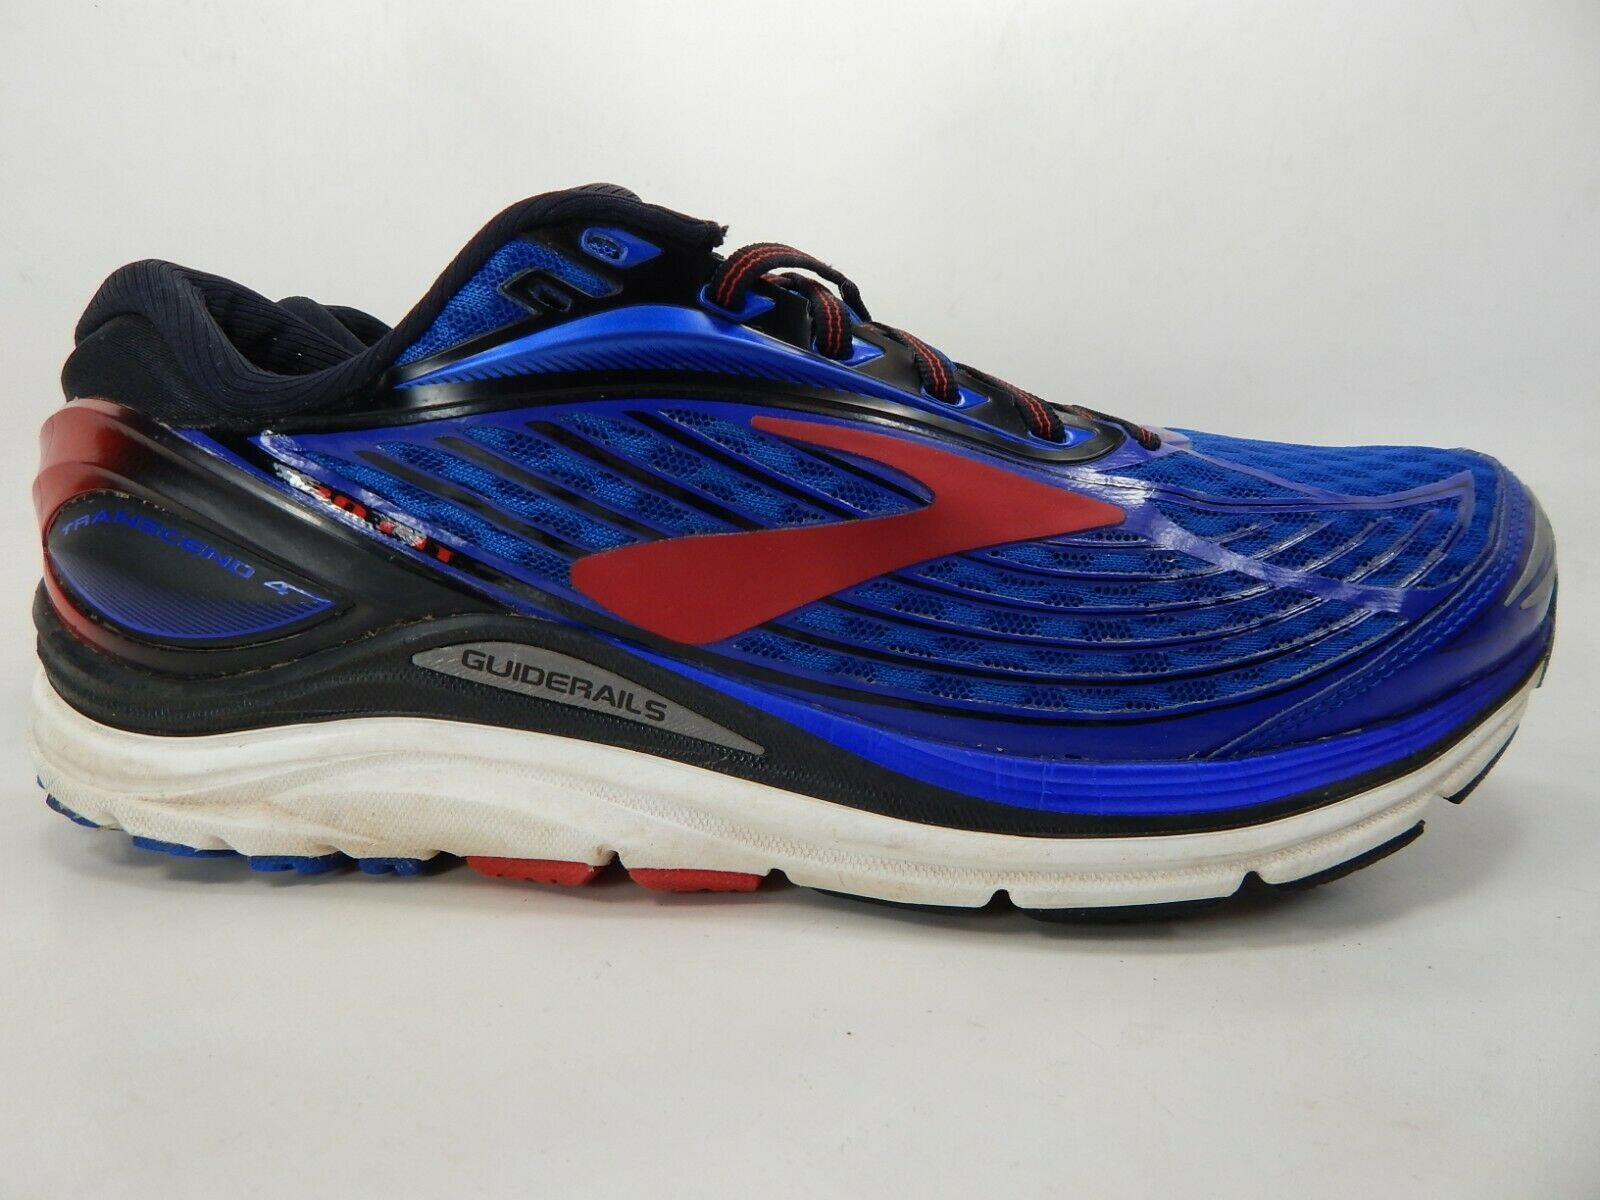 Brooks Transcend 4 Size 10.5 M (D) EU 44.5 Men's Running shoes bluee 1102491D414